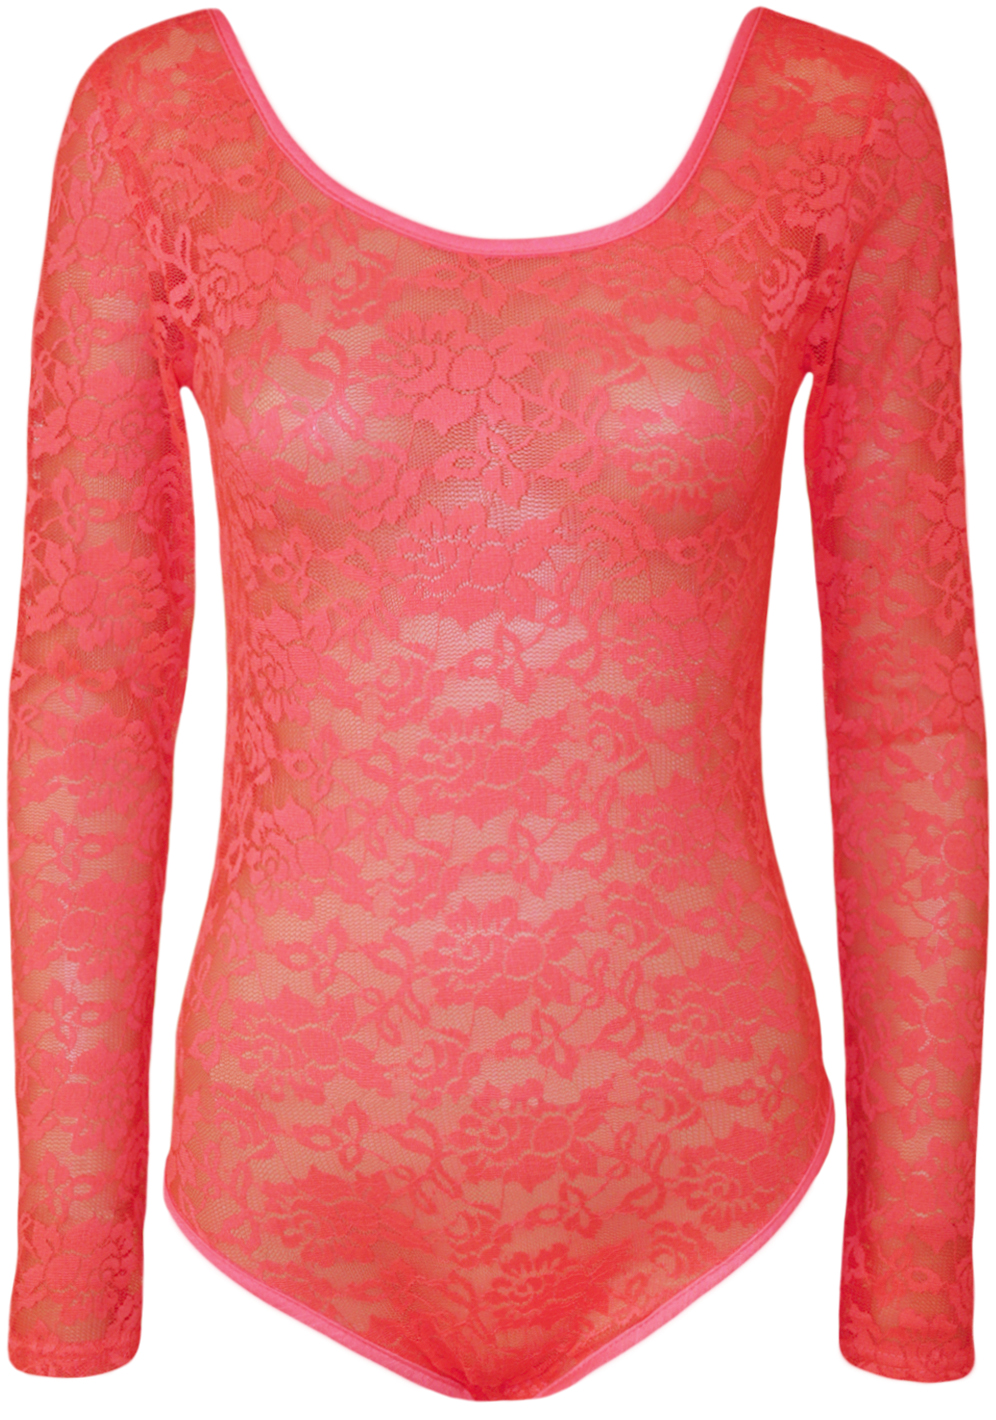 New-Ladies-Lace-Stretch-Bodysuit-Long-Sleeve-Womens-Floral-Body-Leotard-Top-8-14